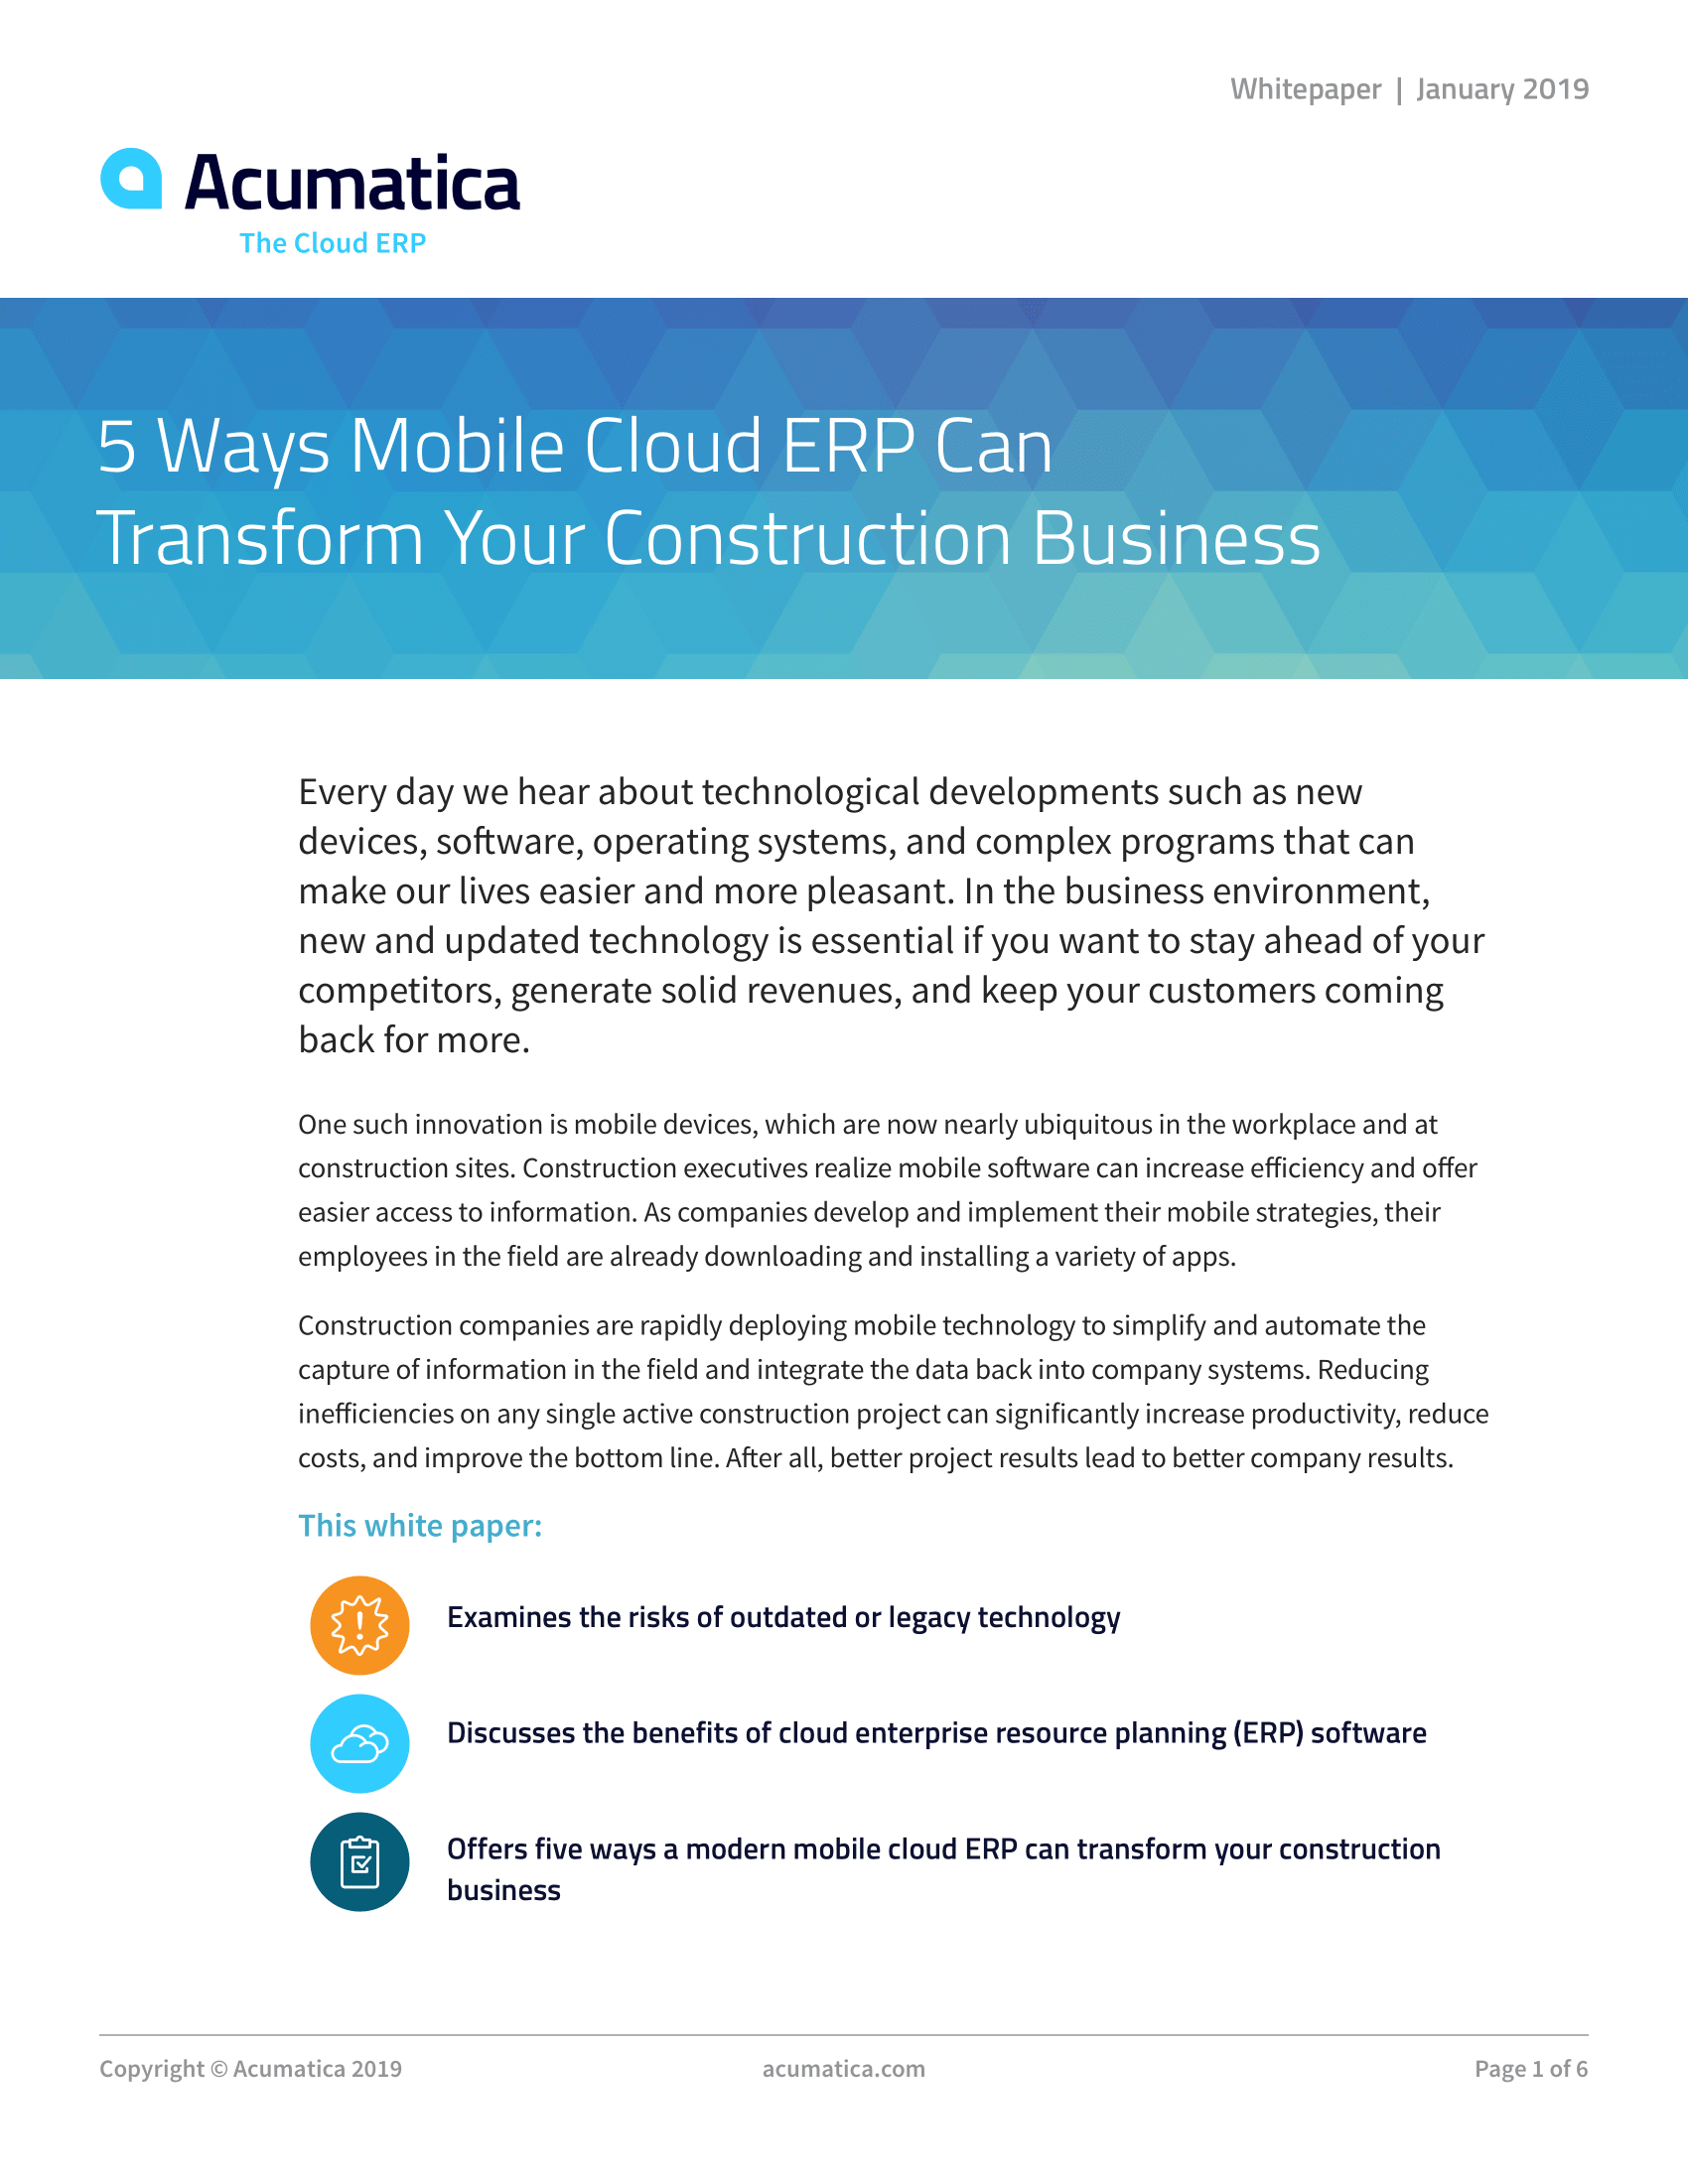 Does your construction accounting system let you gather data anywhere?, page 0